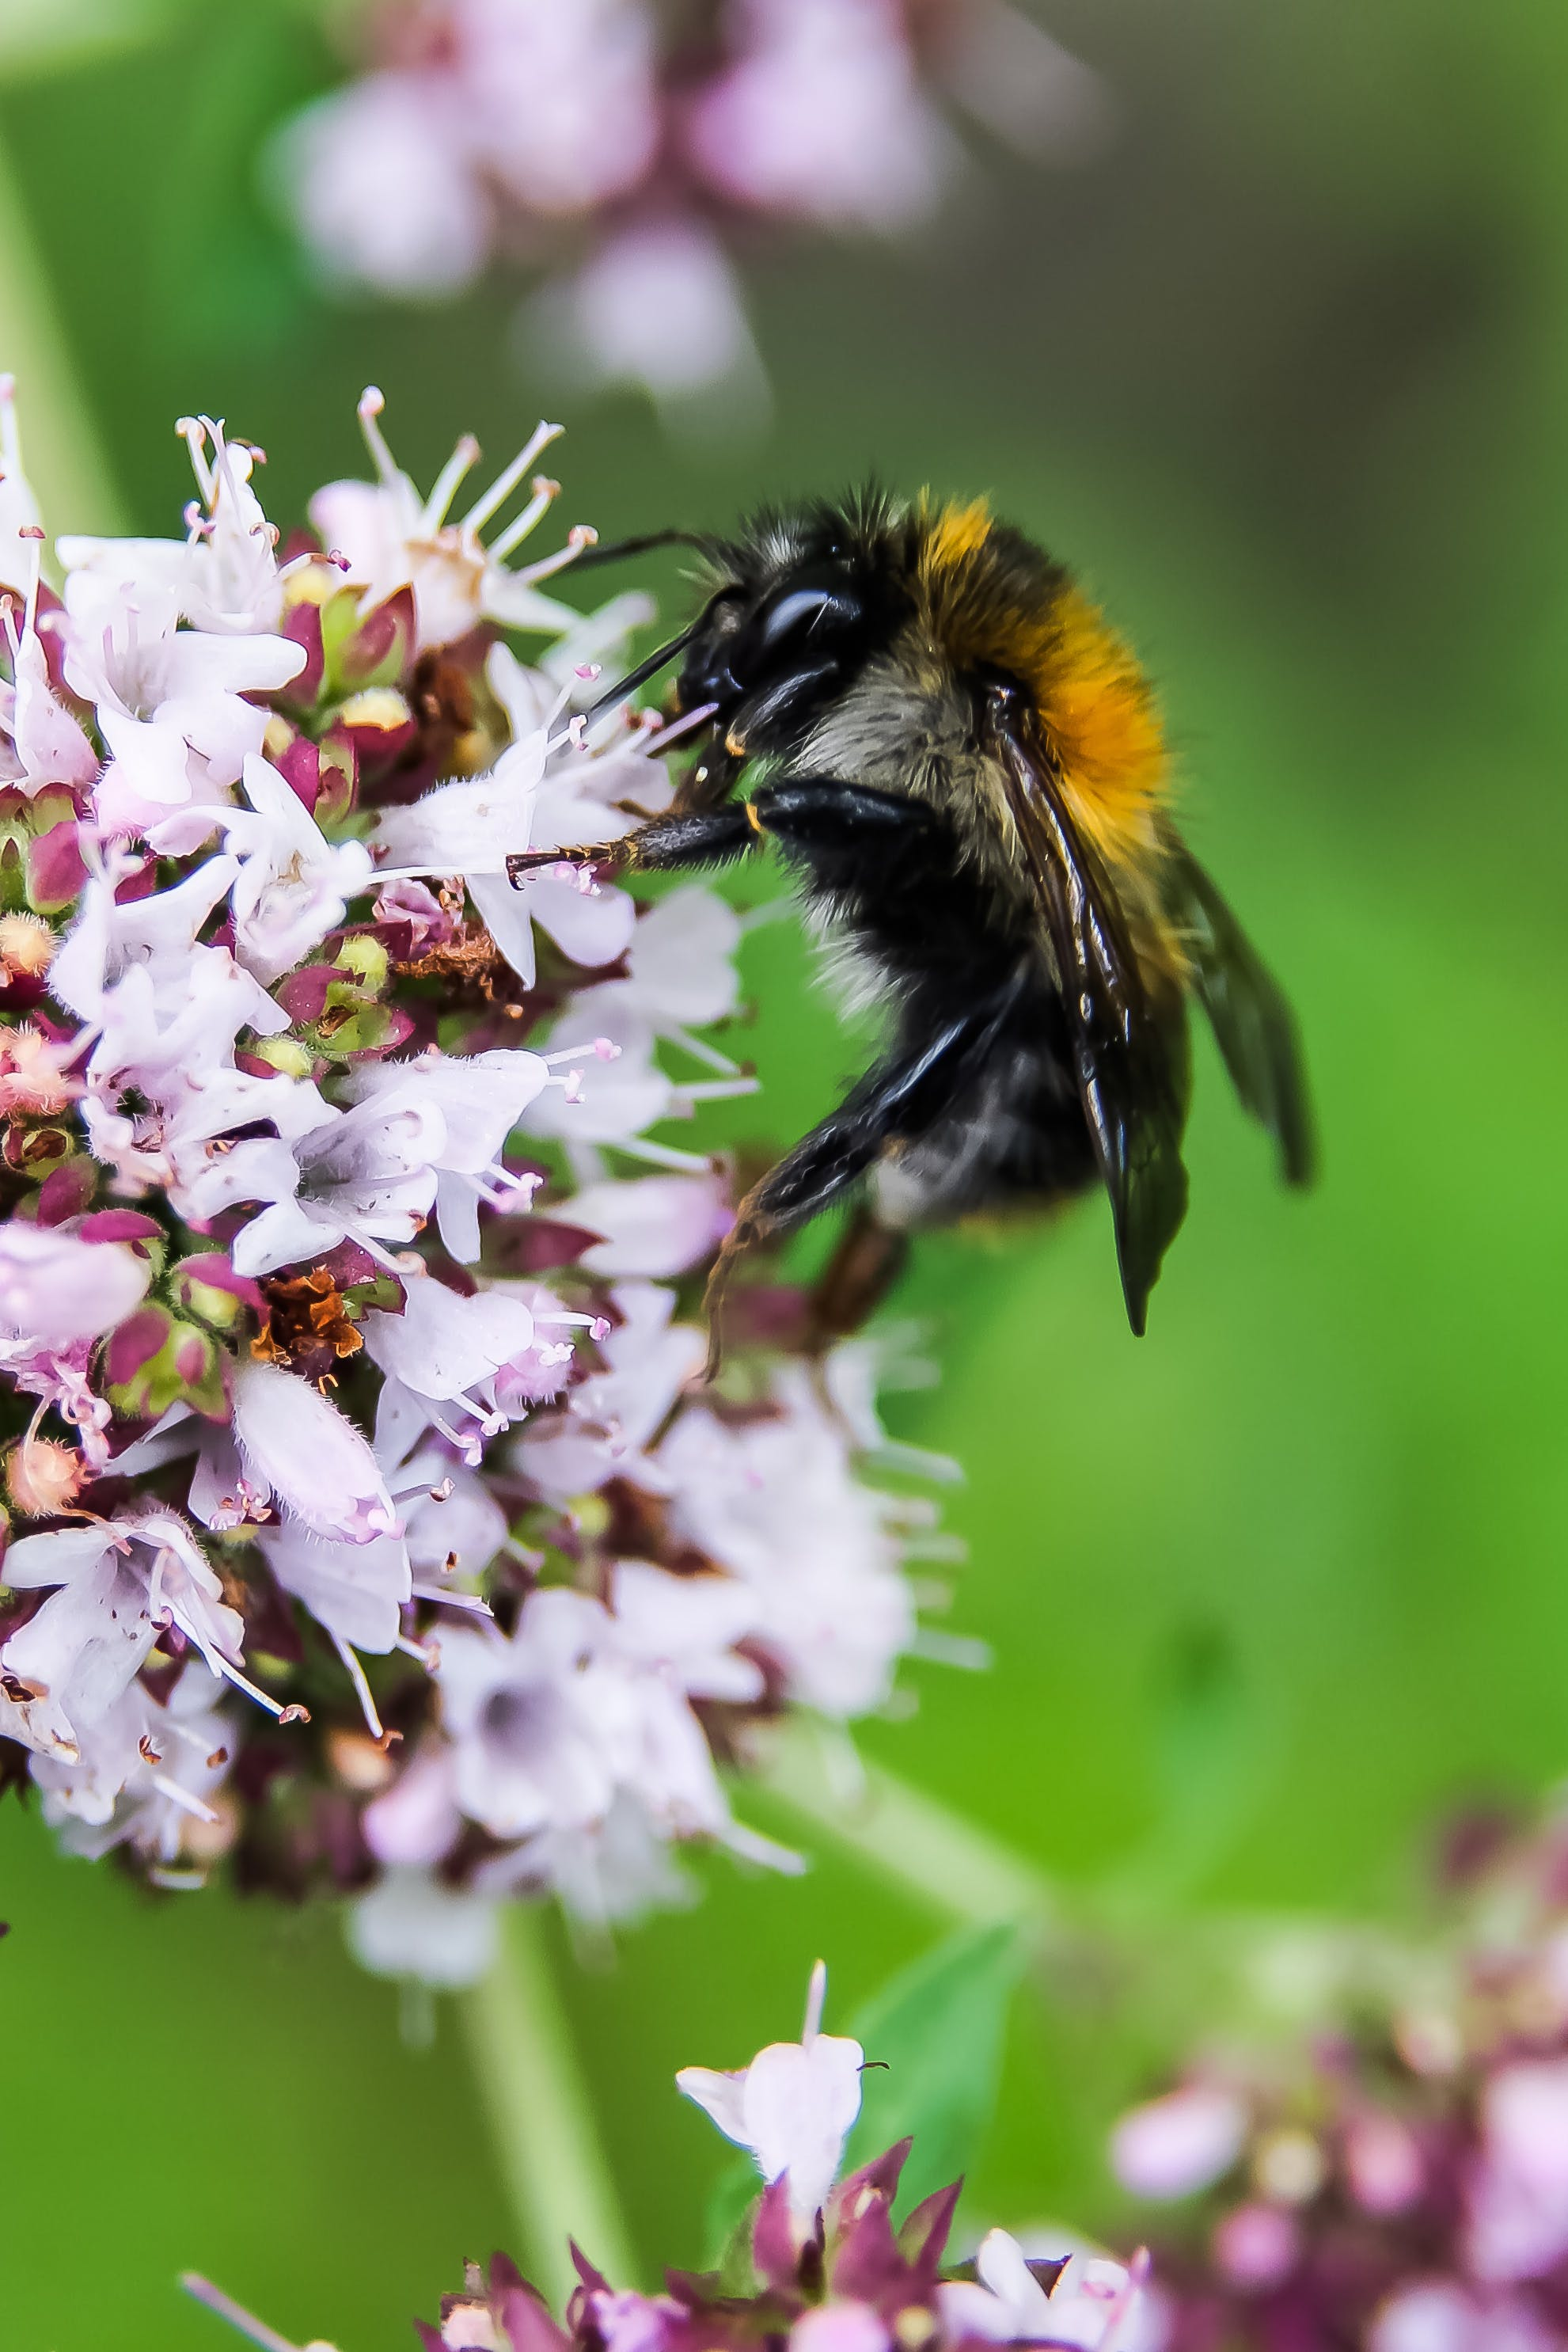 Closeup Photo of Bumble Bee on White Petaled Flowers